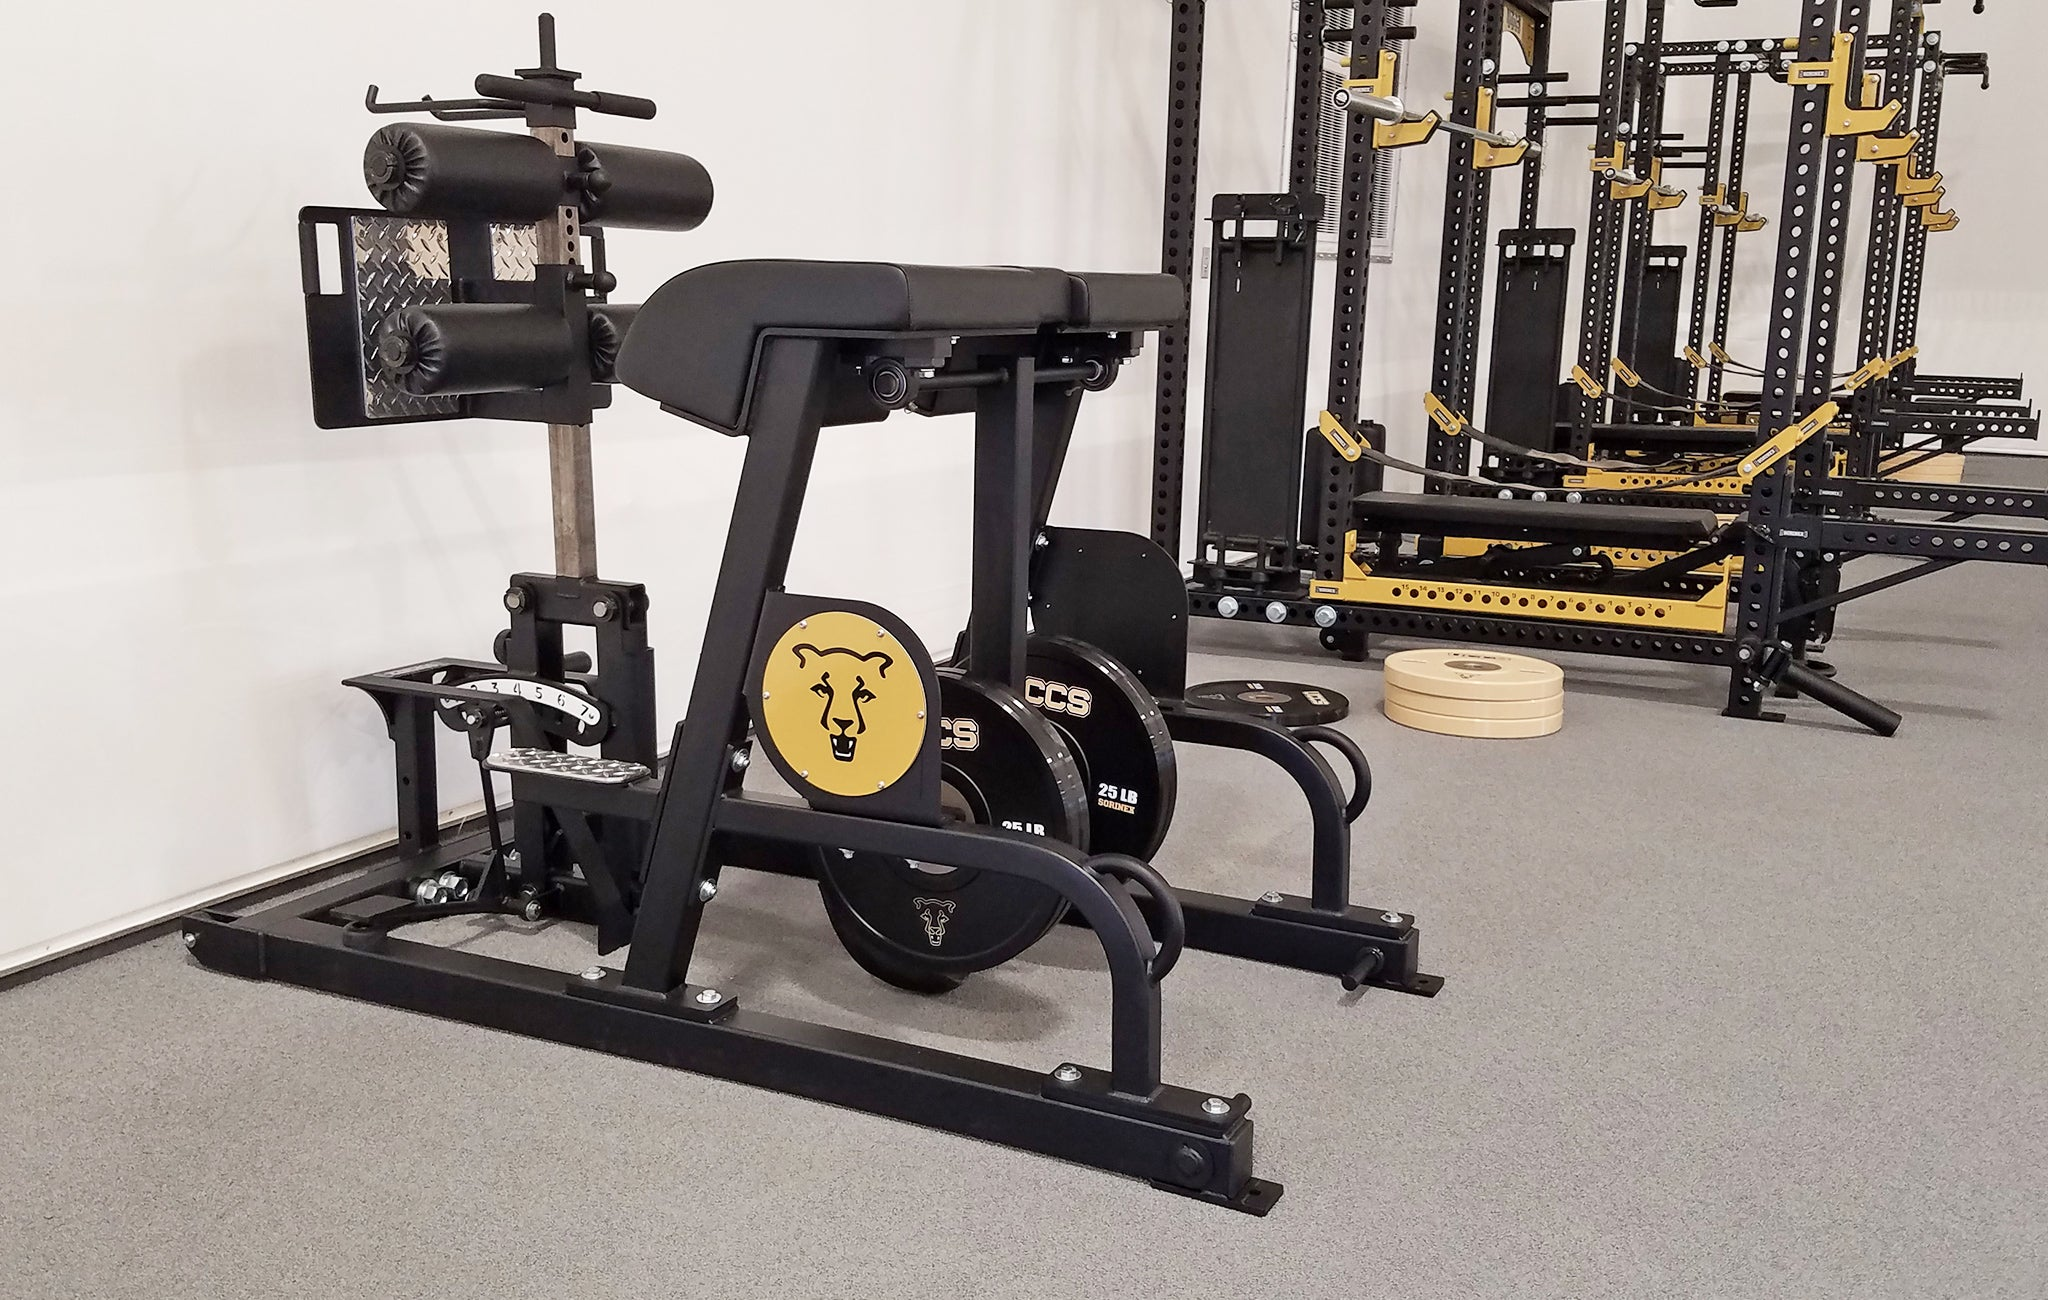 University of colorado strength training